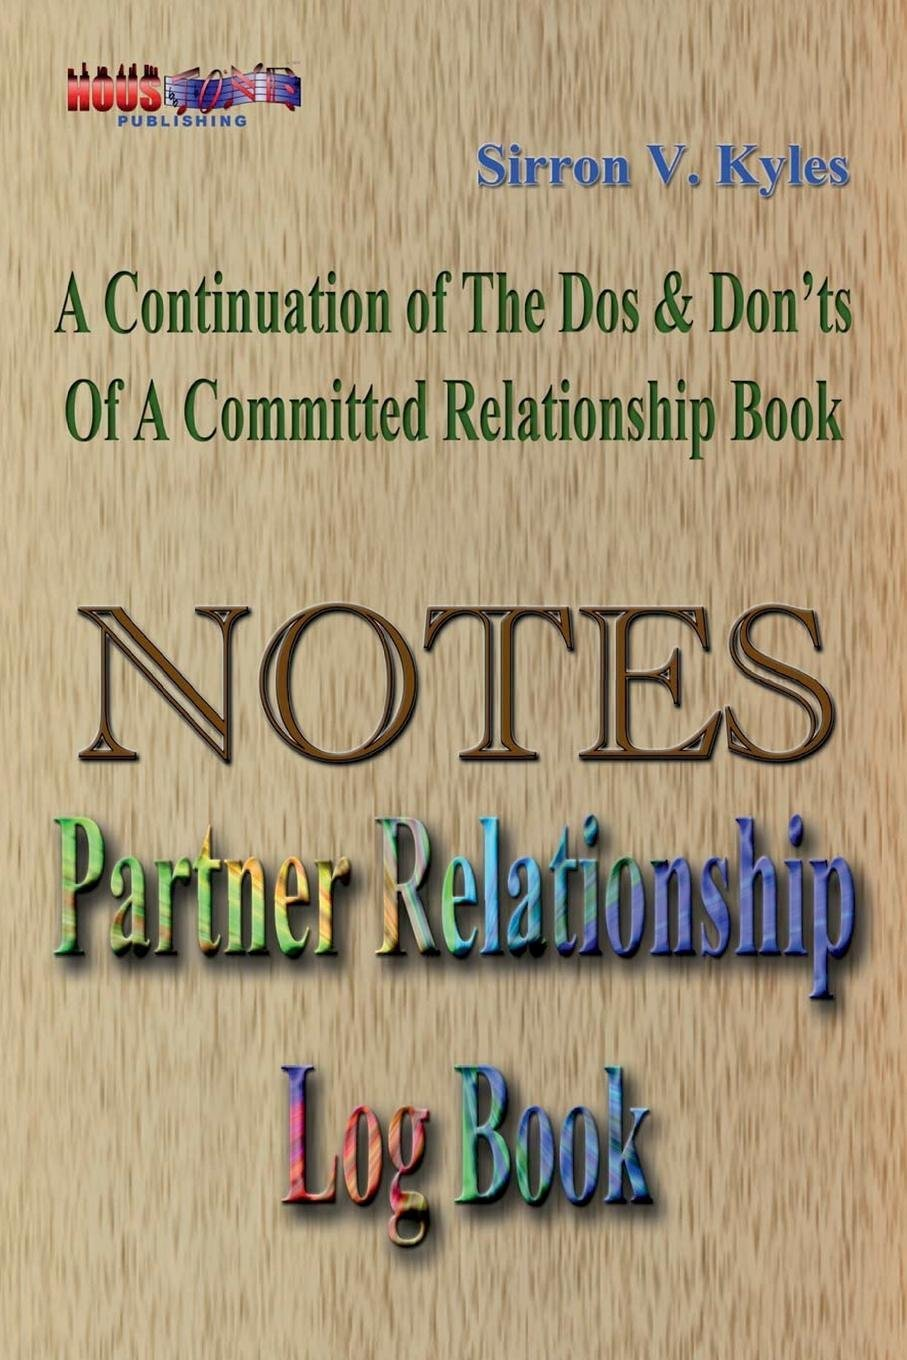 LYNDA: Relationship dos and don ts